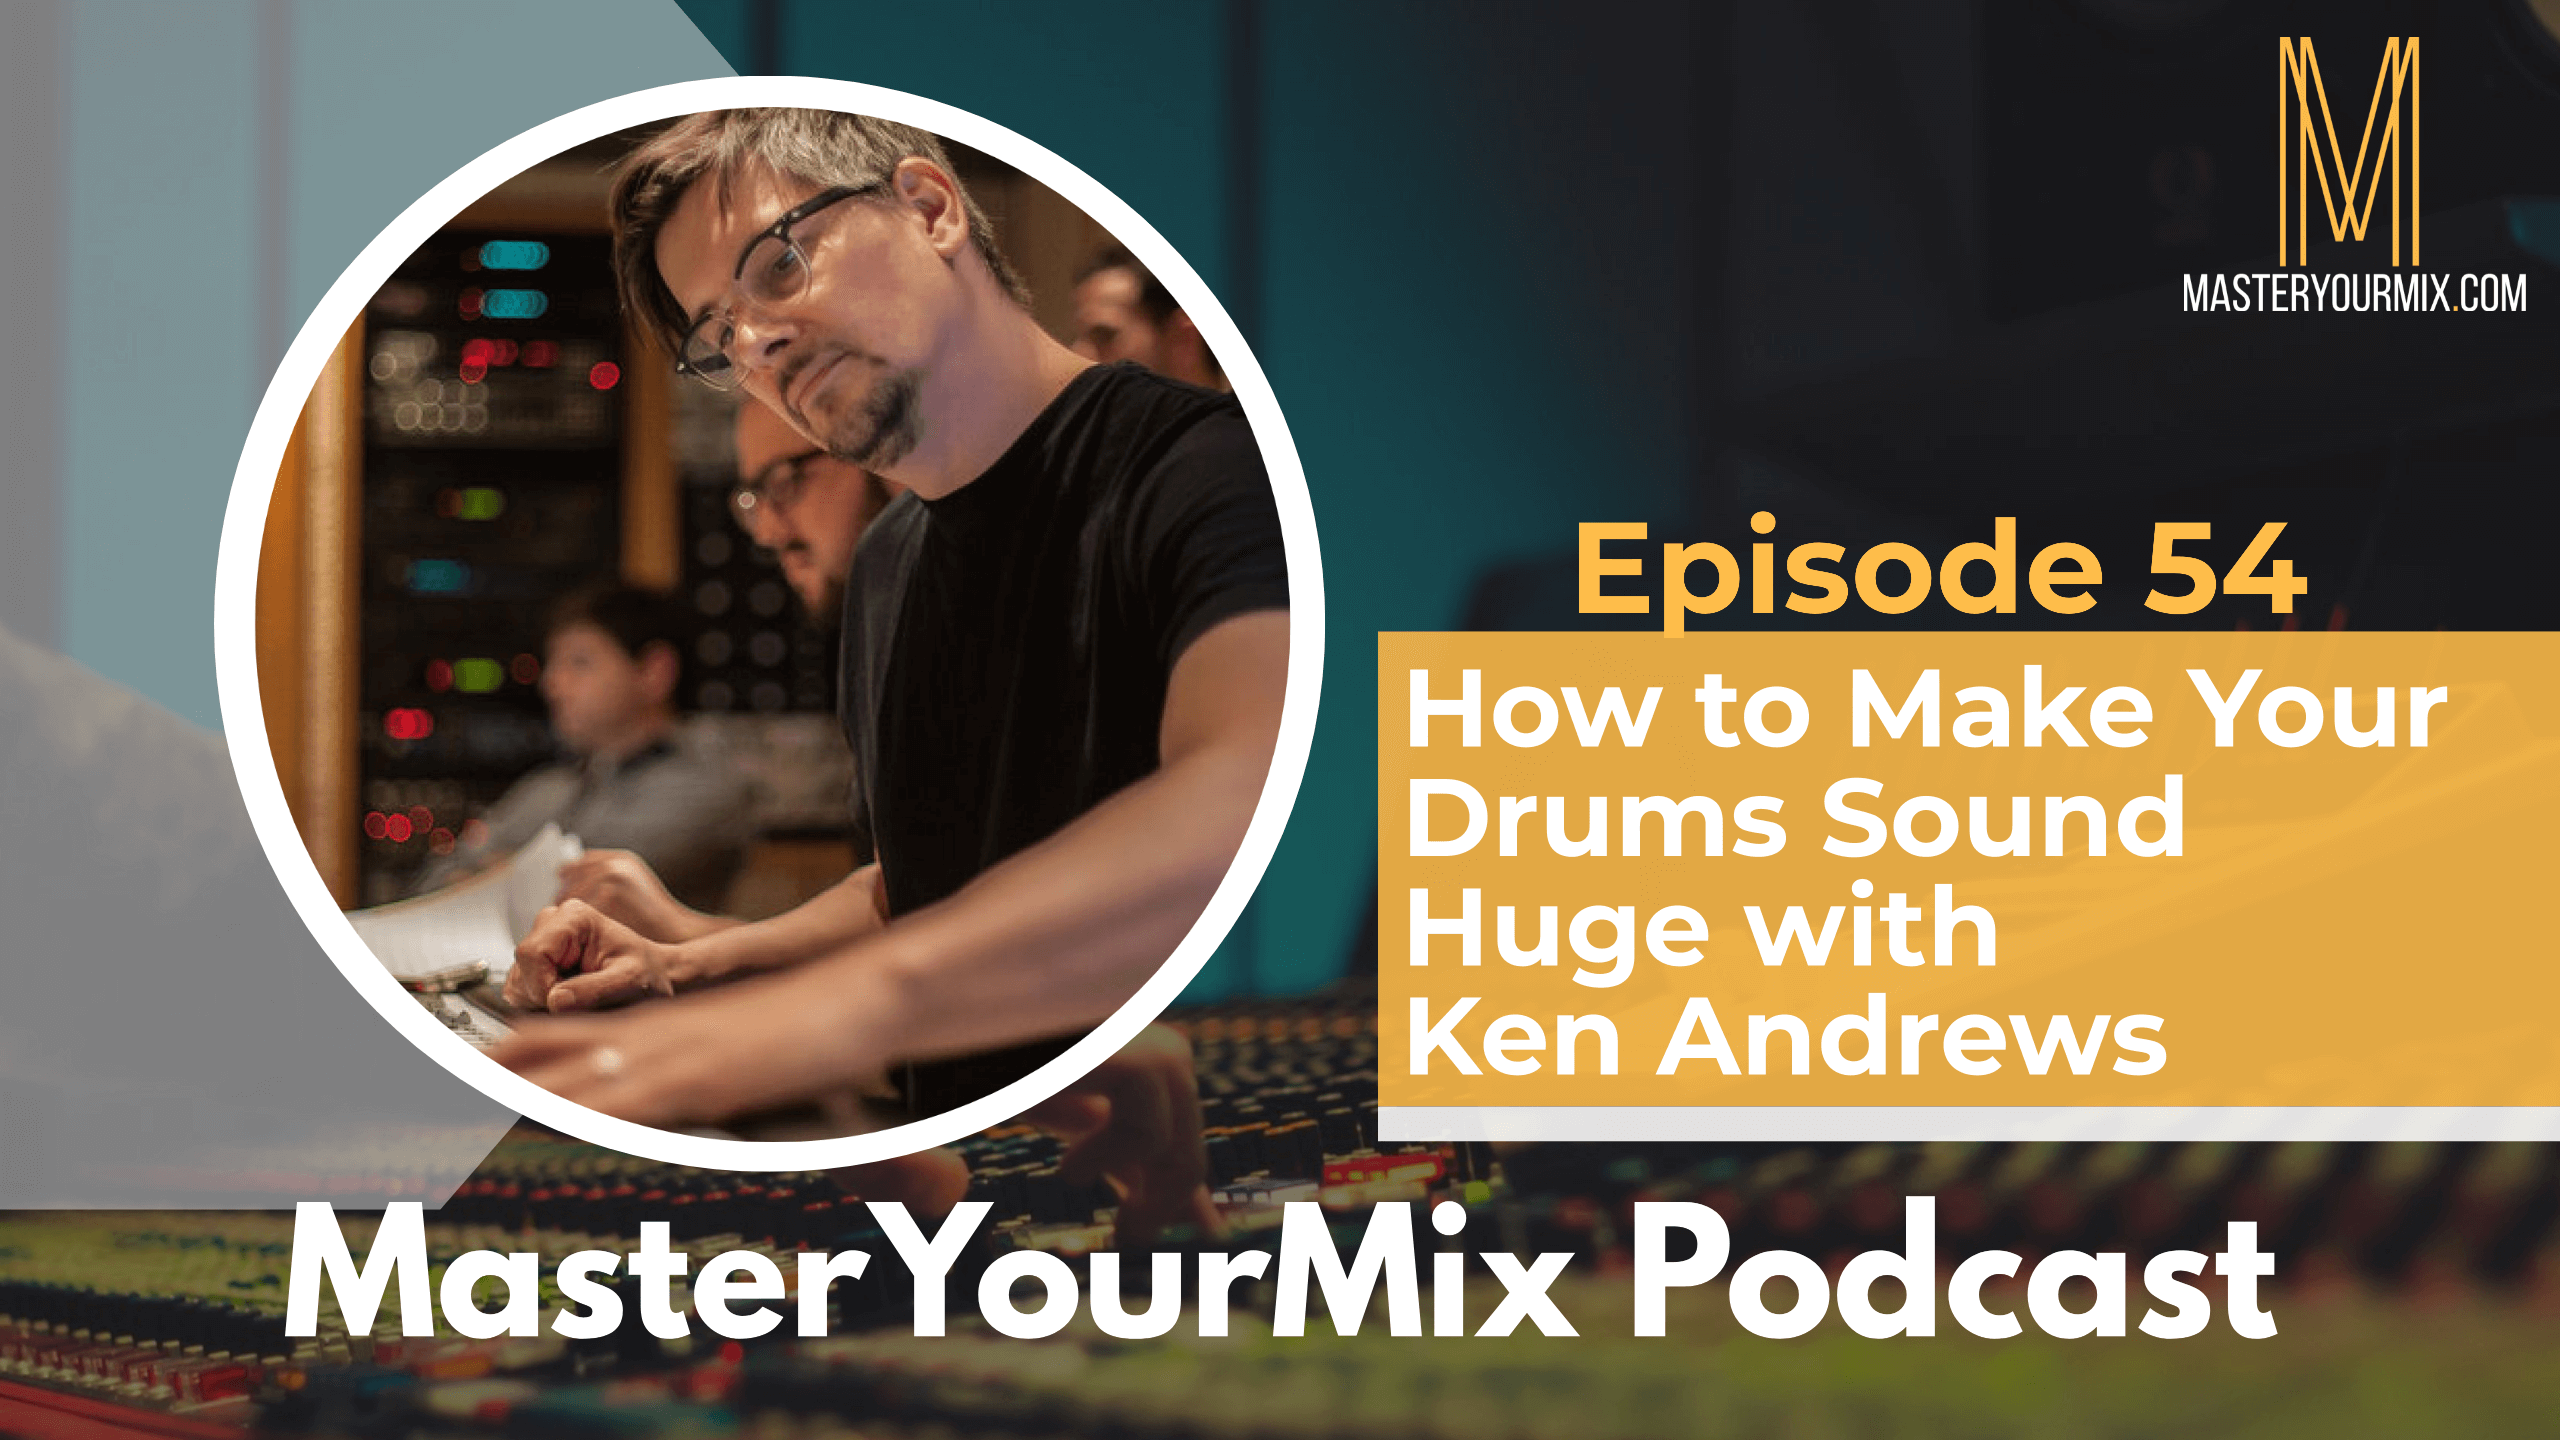 master your mix podcast, ep 54, ken andrews